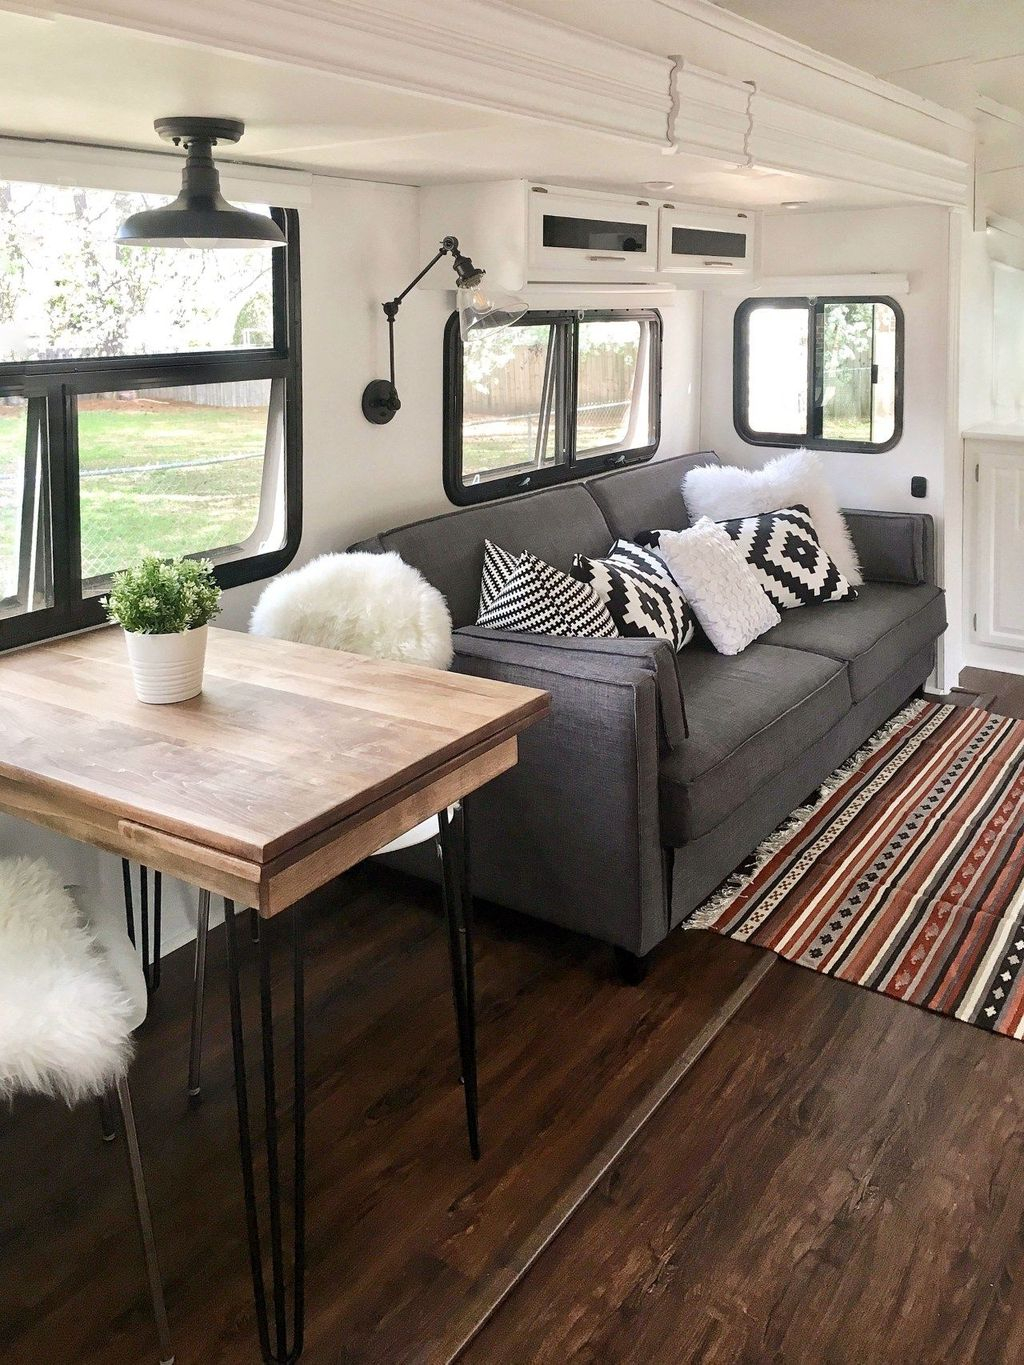 Brilliant Organize Ideas For First Rv Living Design To Try Asap01